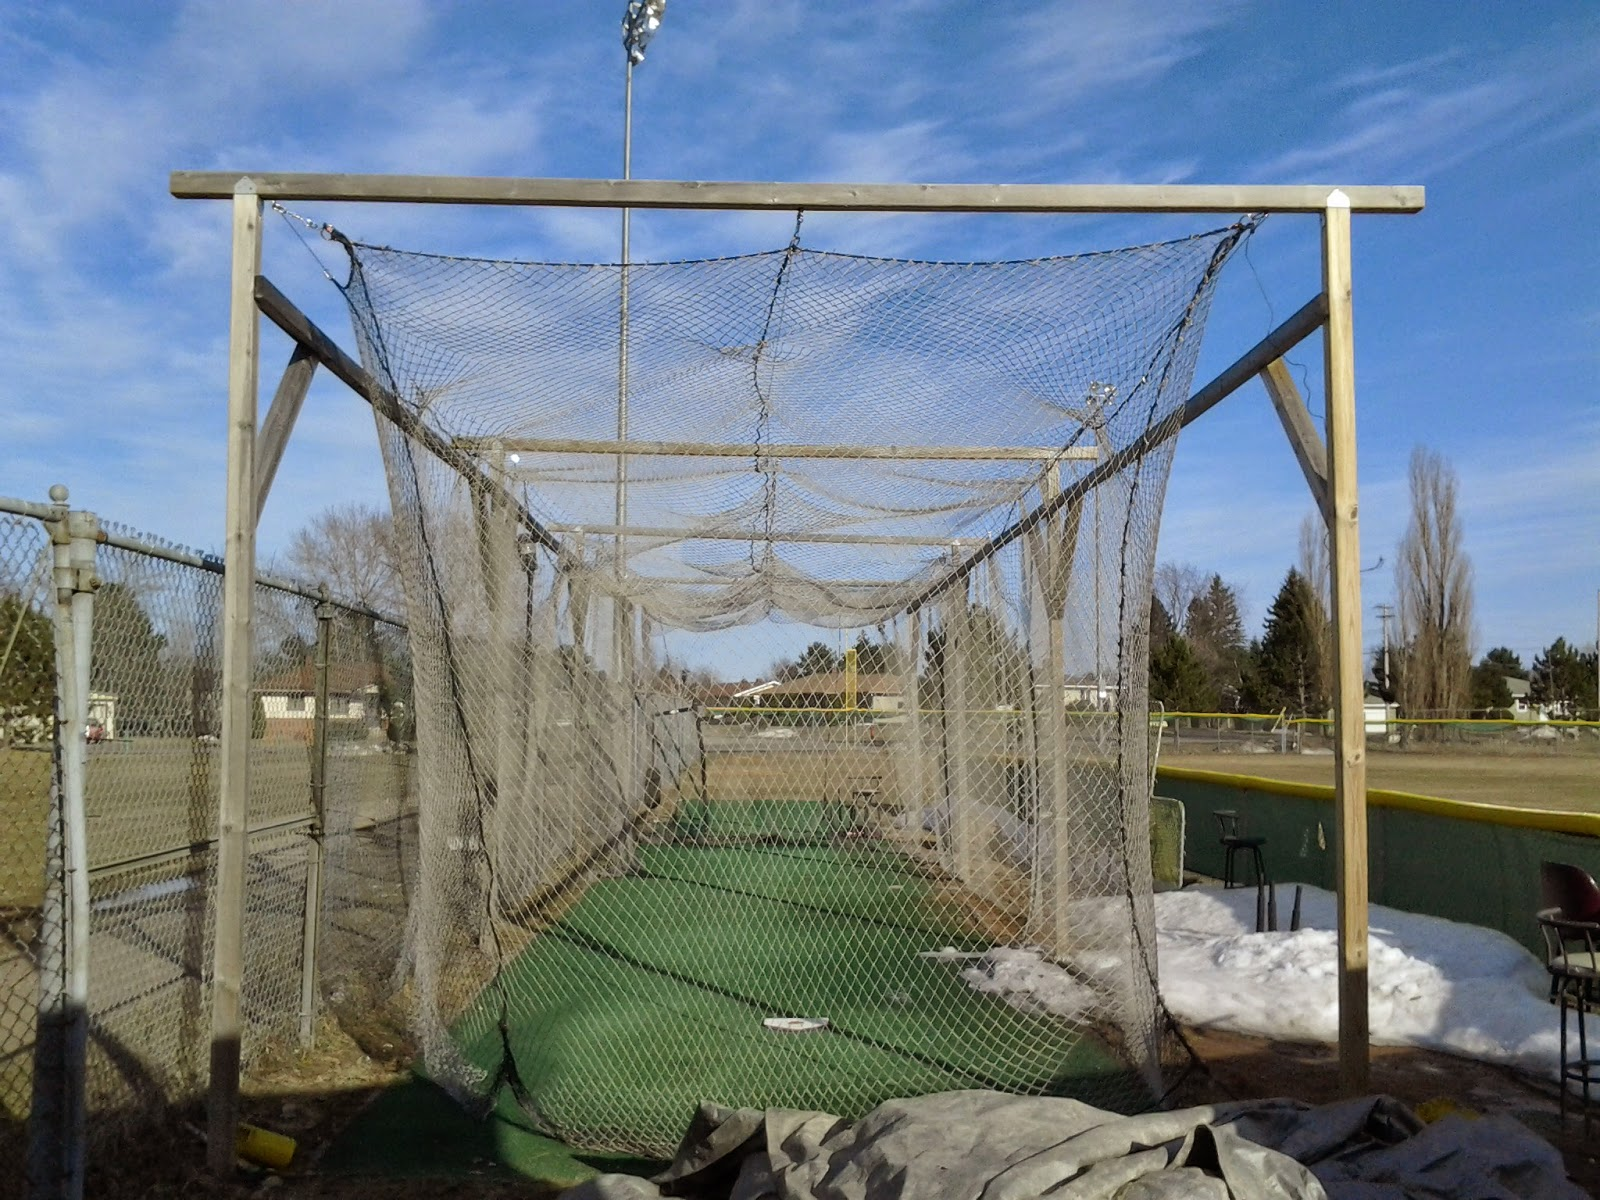 Ely High school field batting cage, 2014, spring, snow on the side